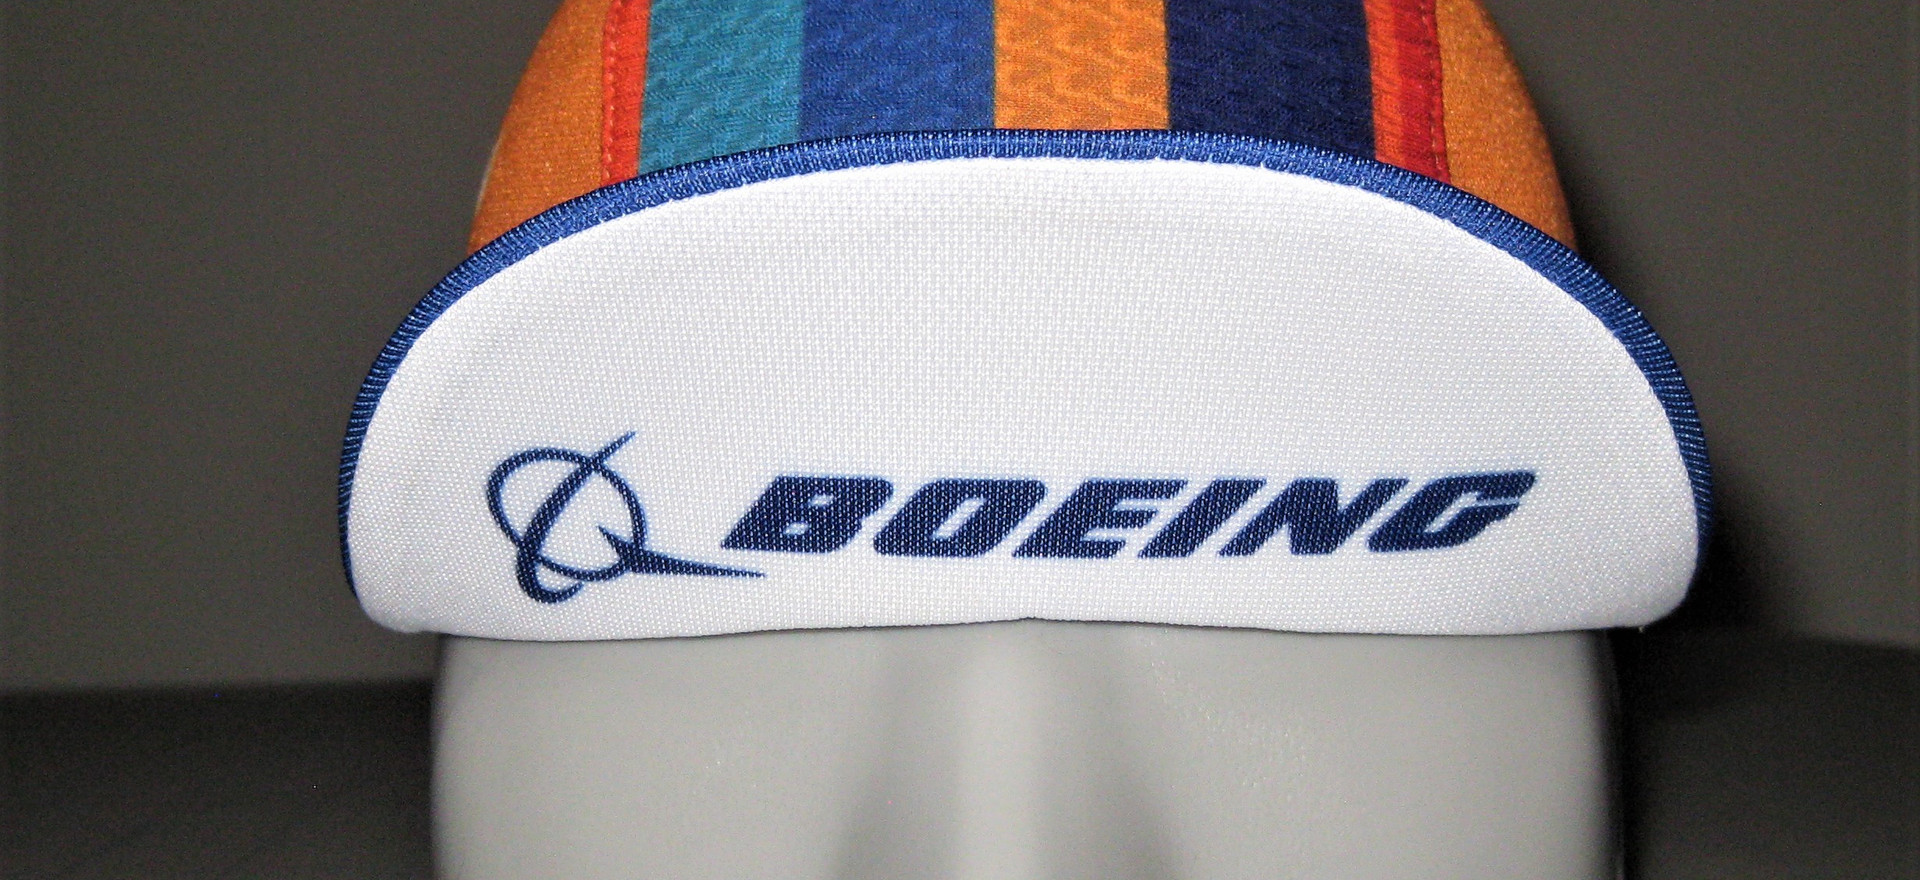 Boeing Custom Cycling Cap |  | Custom Cycling Cap | Custom Cap | Custom team cycling Cap | cycling cap | BEST Custom Cycling Cap | American Diabetes Association Tour de Cure | AIDS - Ride for AIDS / TPAN | Ride for life | Custom JDRF Diabetes Foundation - Juvenile Diabetes Research Foundation | RAGBRAI | Bike MS Multiple Sclerosis Society | Bicycle Apparel